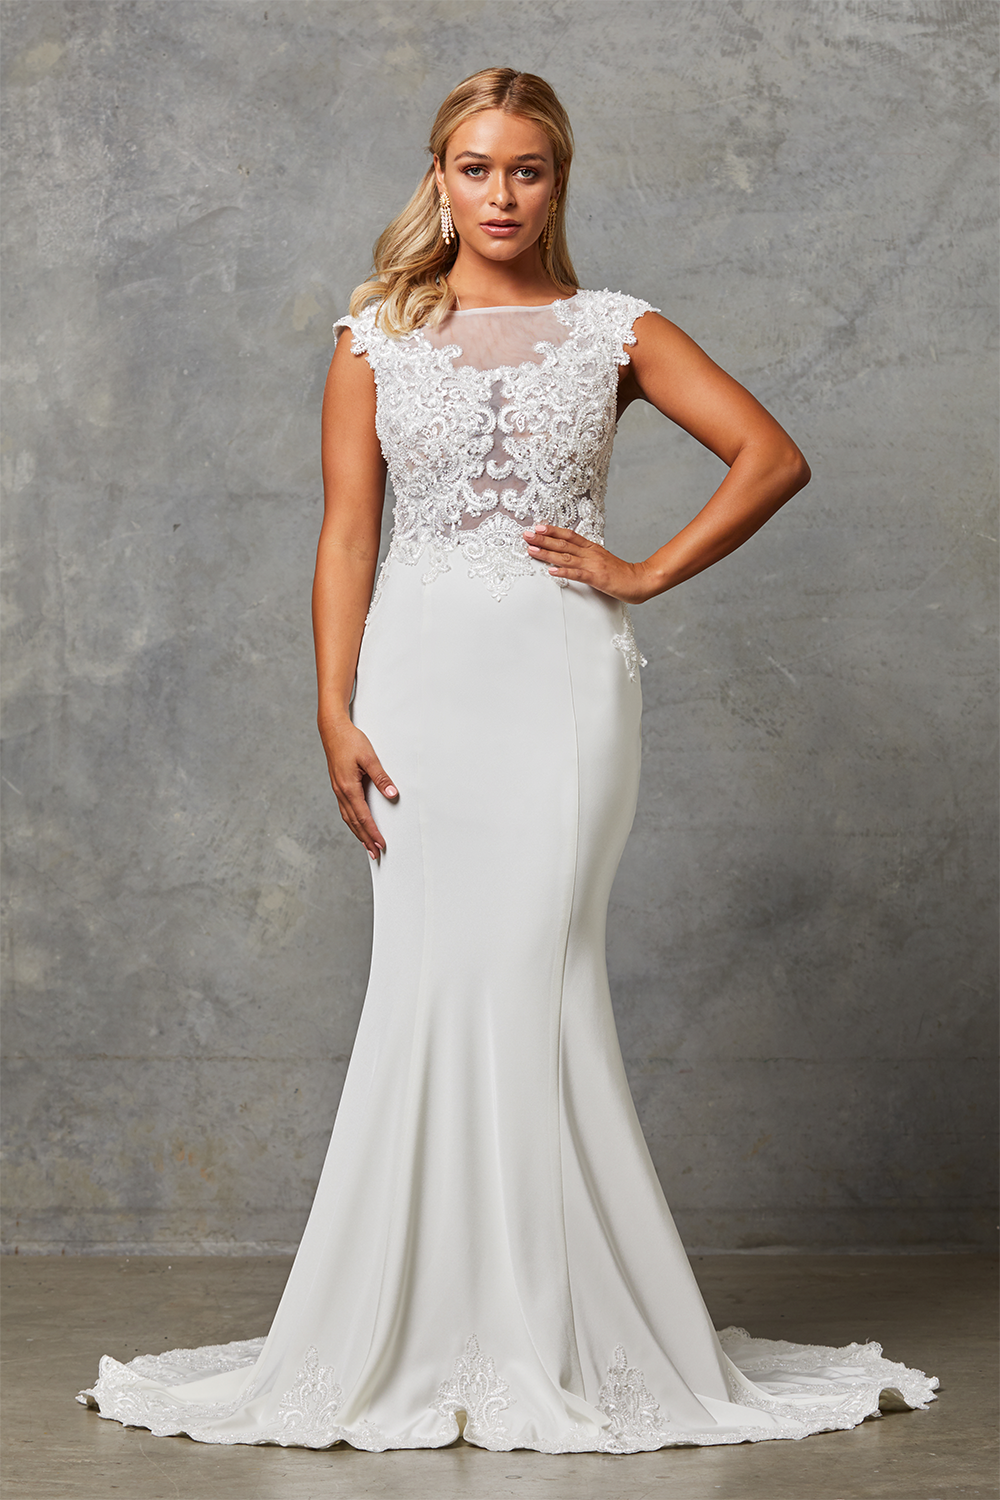 Lora Wedding Dress with Detachable Cape-NoCape-front